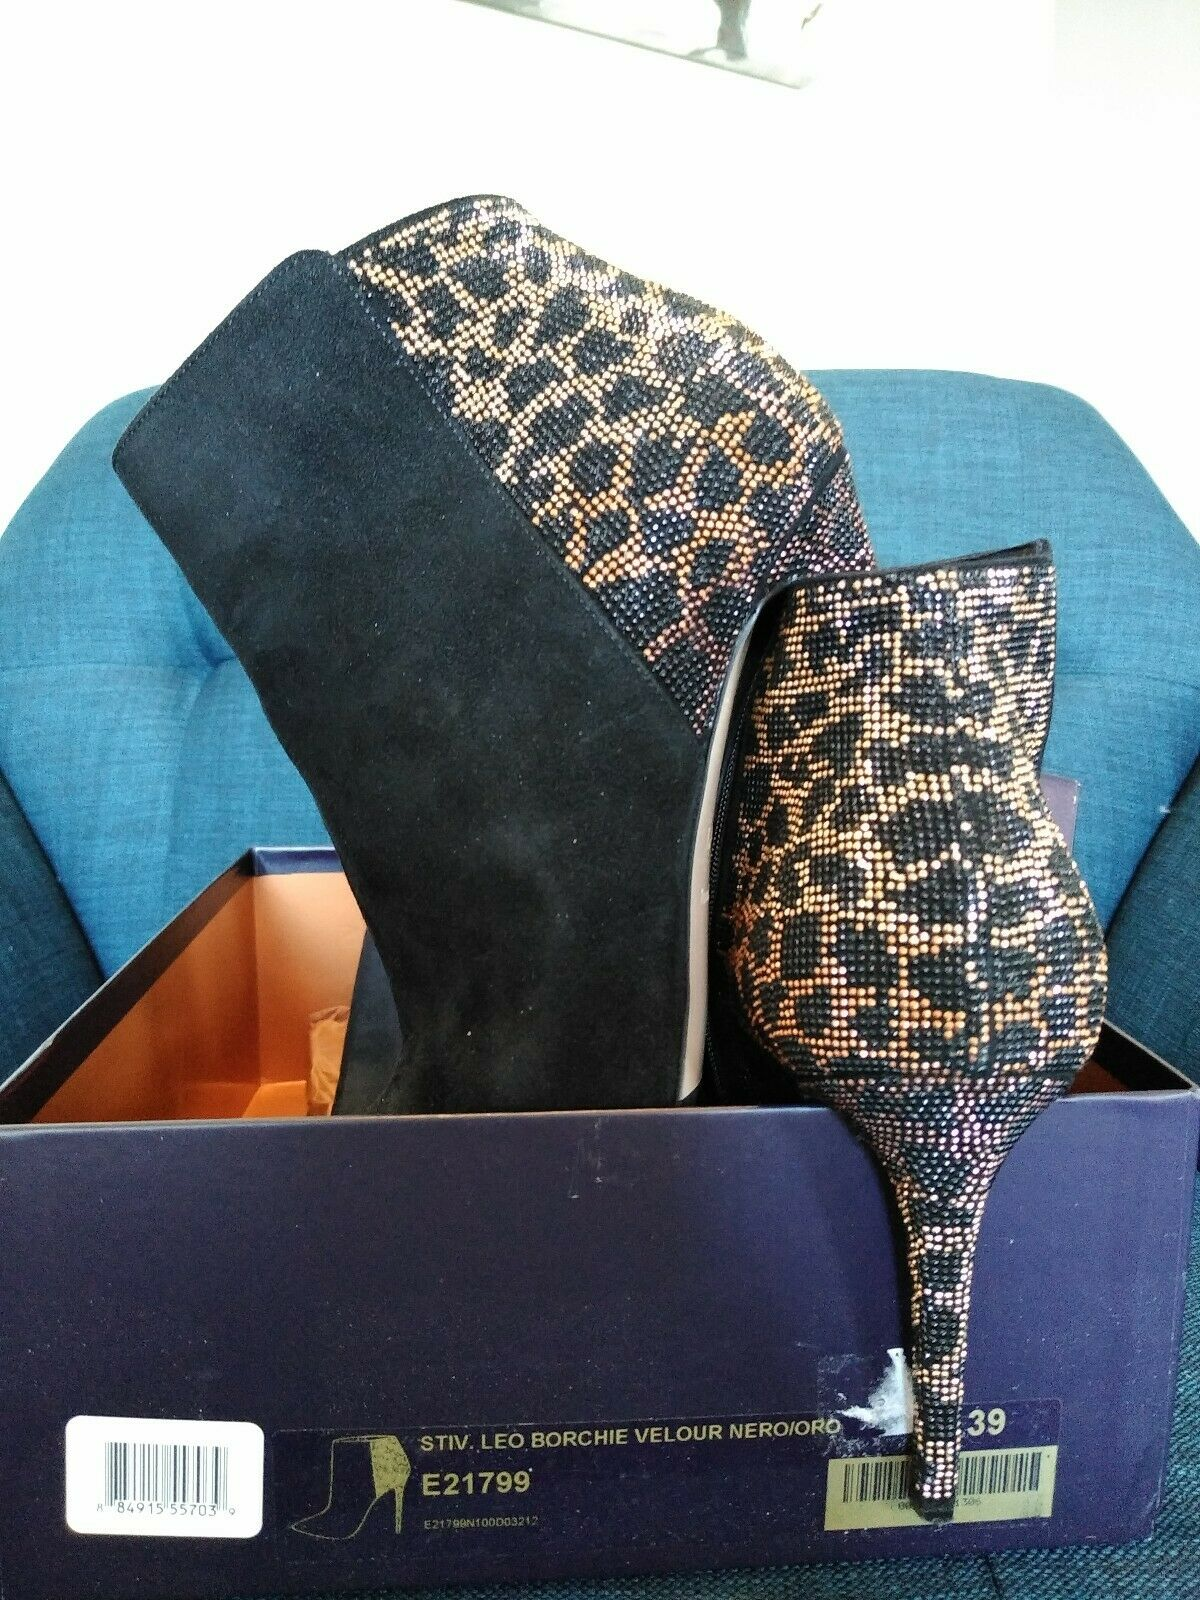 Le silla boots black suede suede suede with beads size 39 aaffac